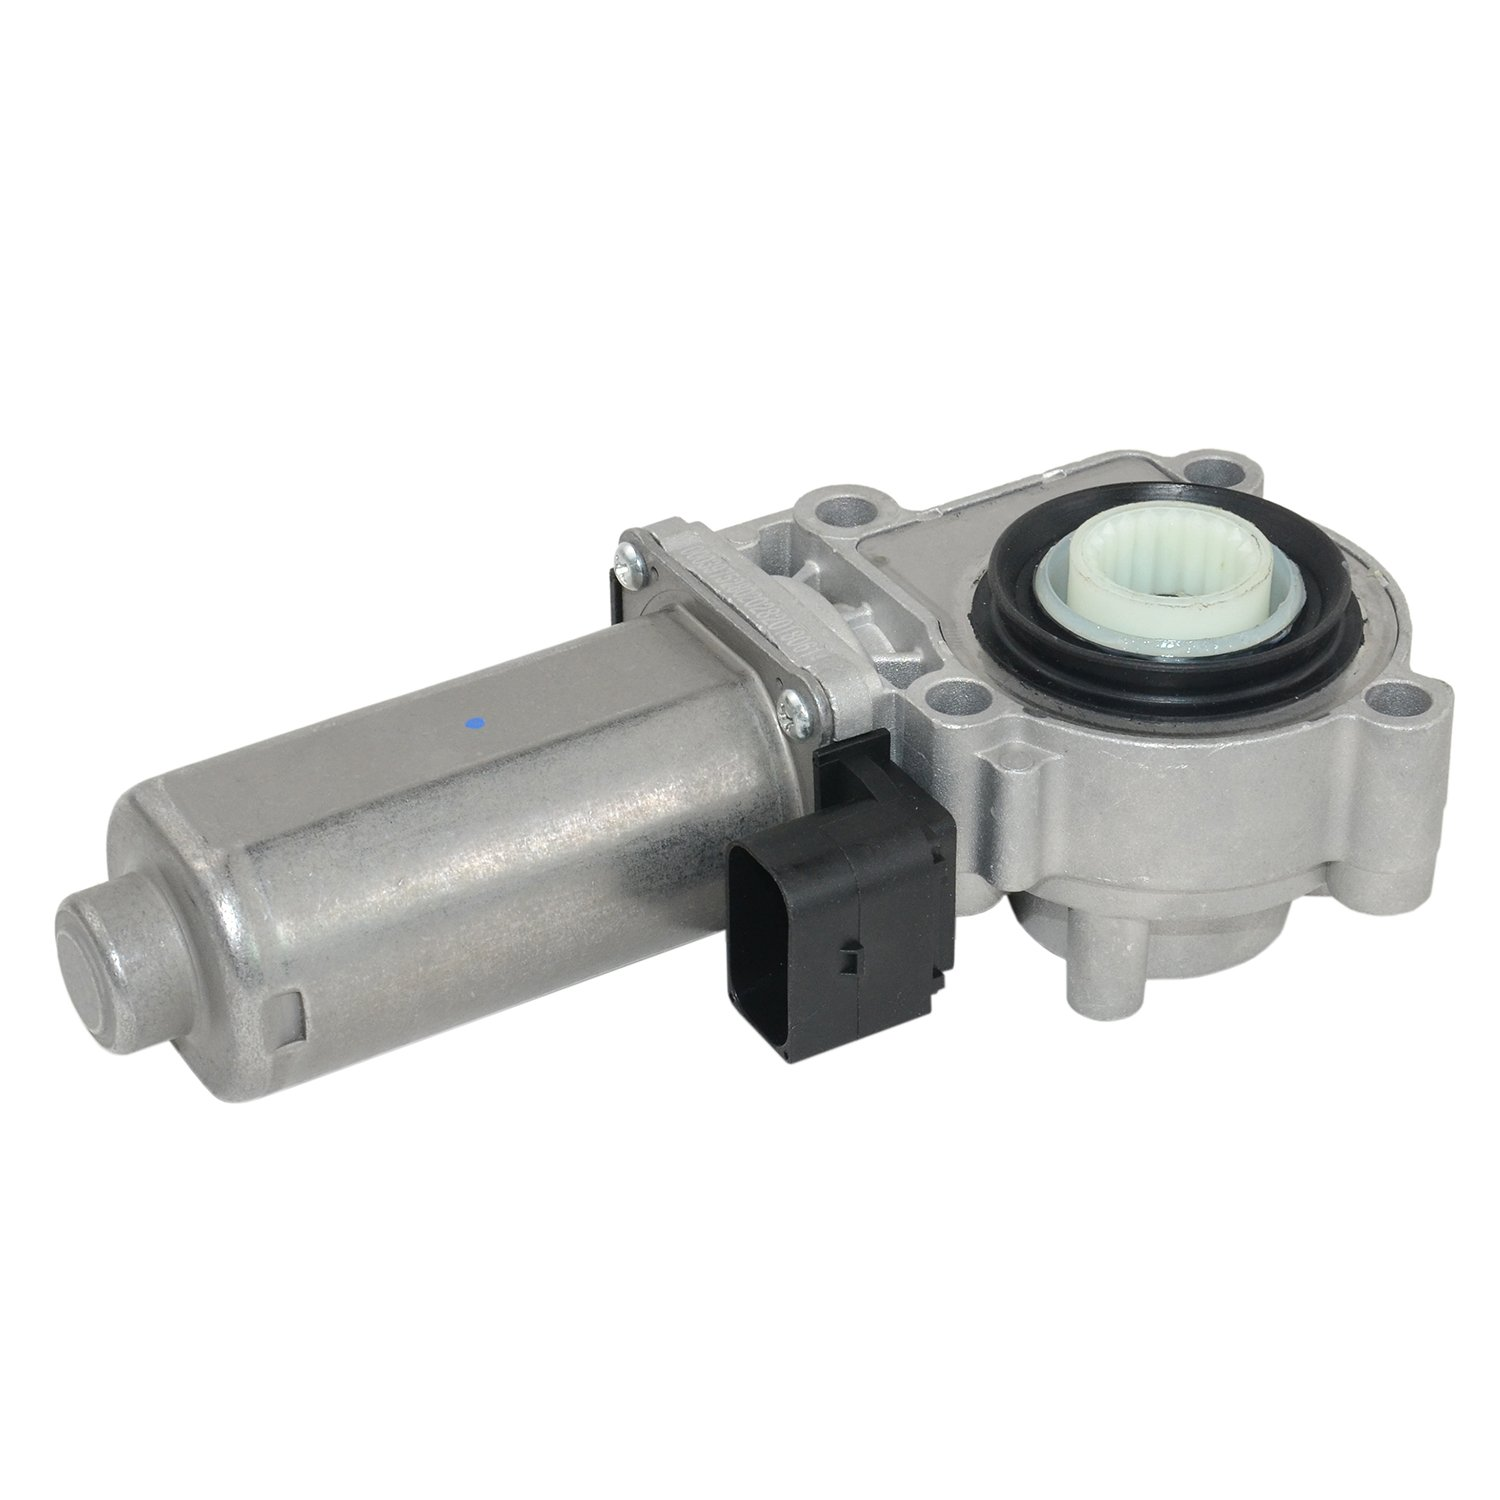 Transfer Case Shift Actuator Motor For BMW X3 / X5 27103455136 27107566296  27103455139